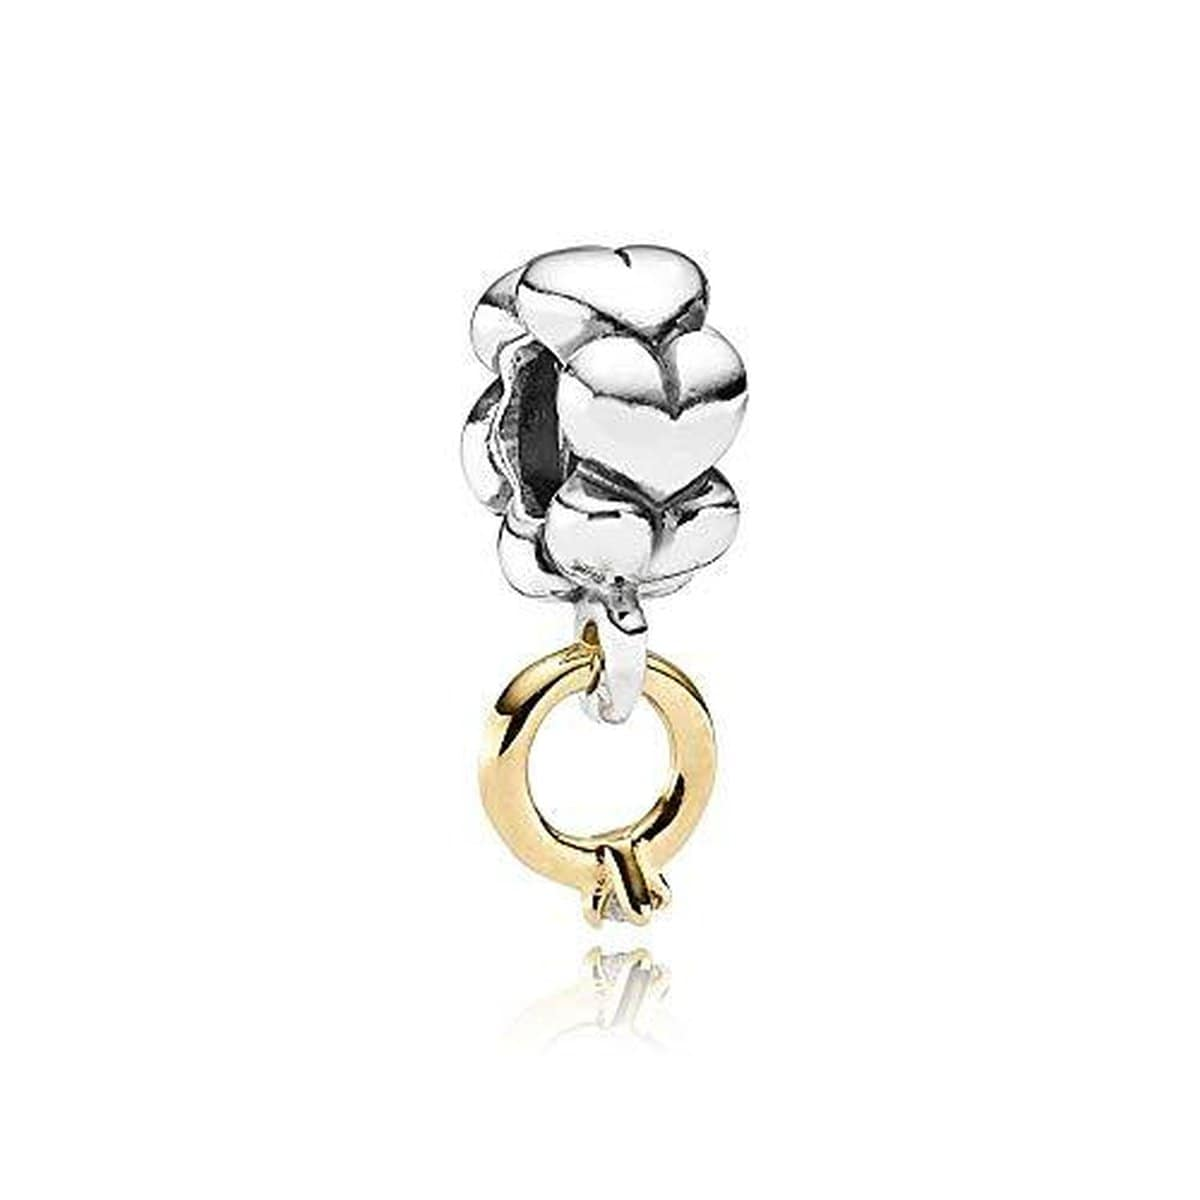 I Do 14K Gold & Silver Diamond Charm - 790999D